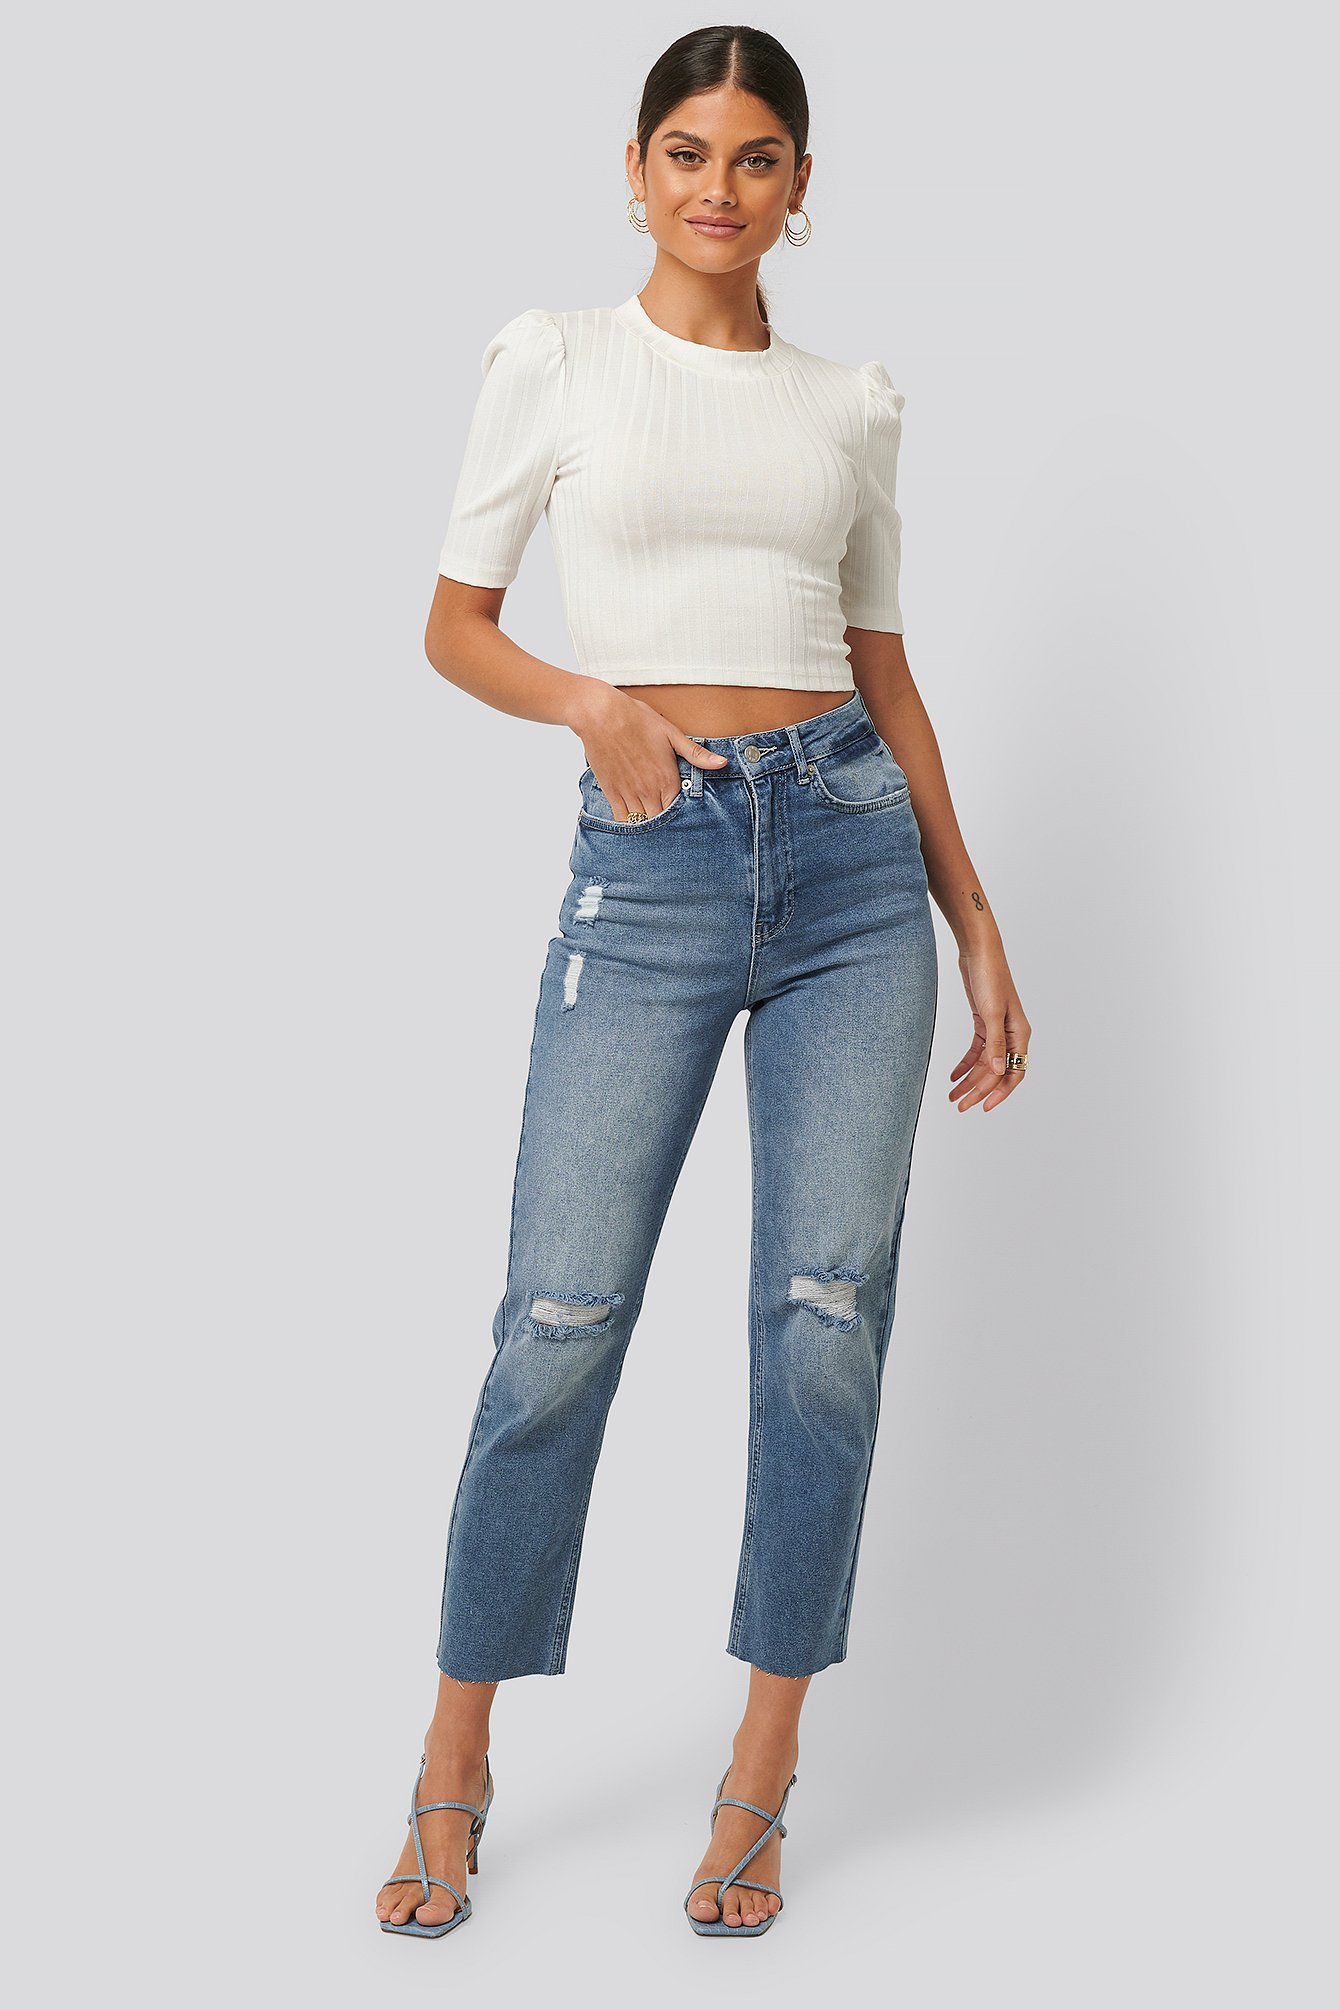 nakd_high_waist_straight_destroyed_jeans_1100-002681-0116_01c